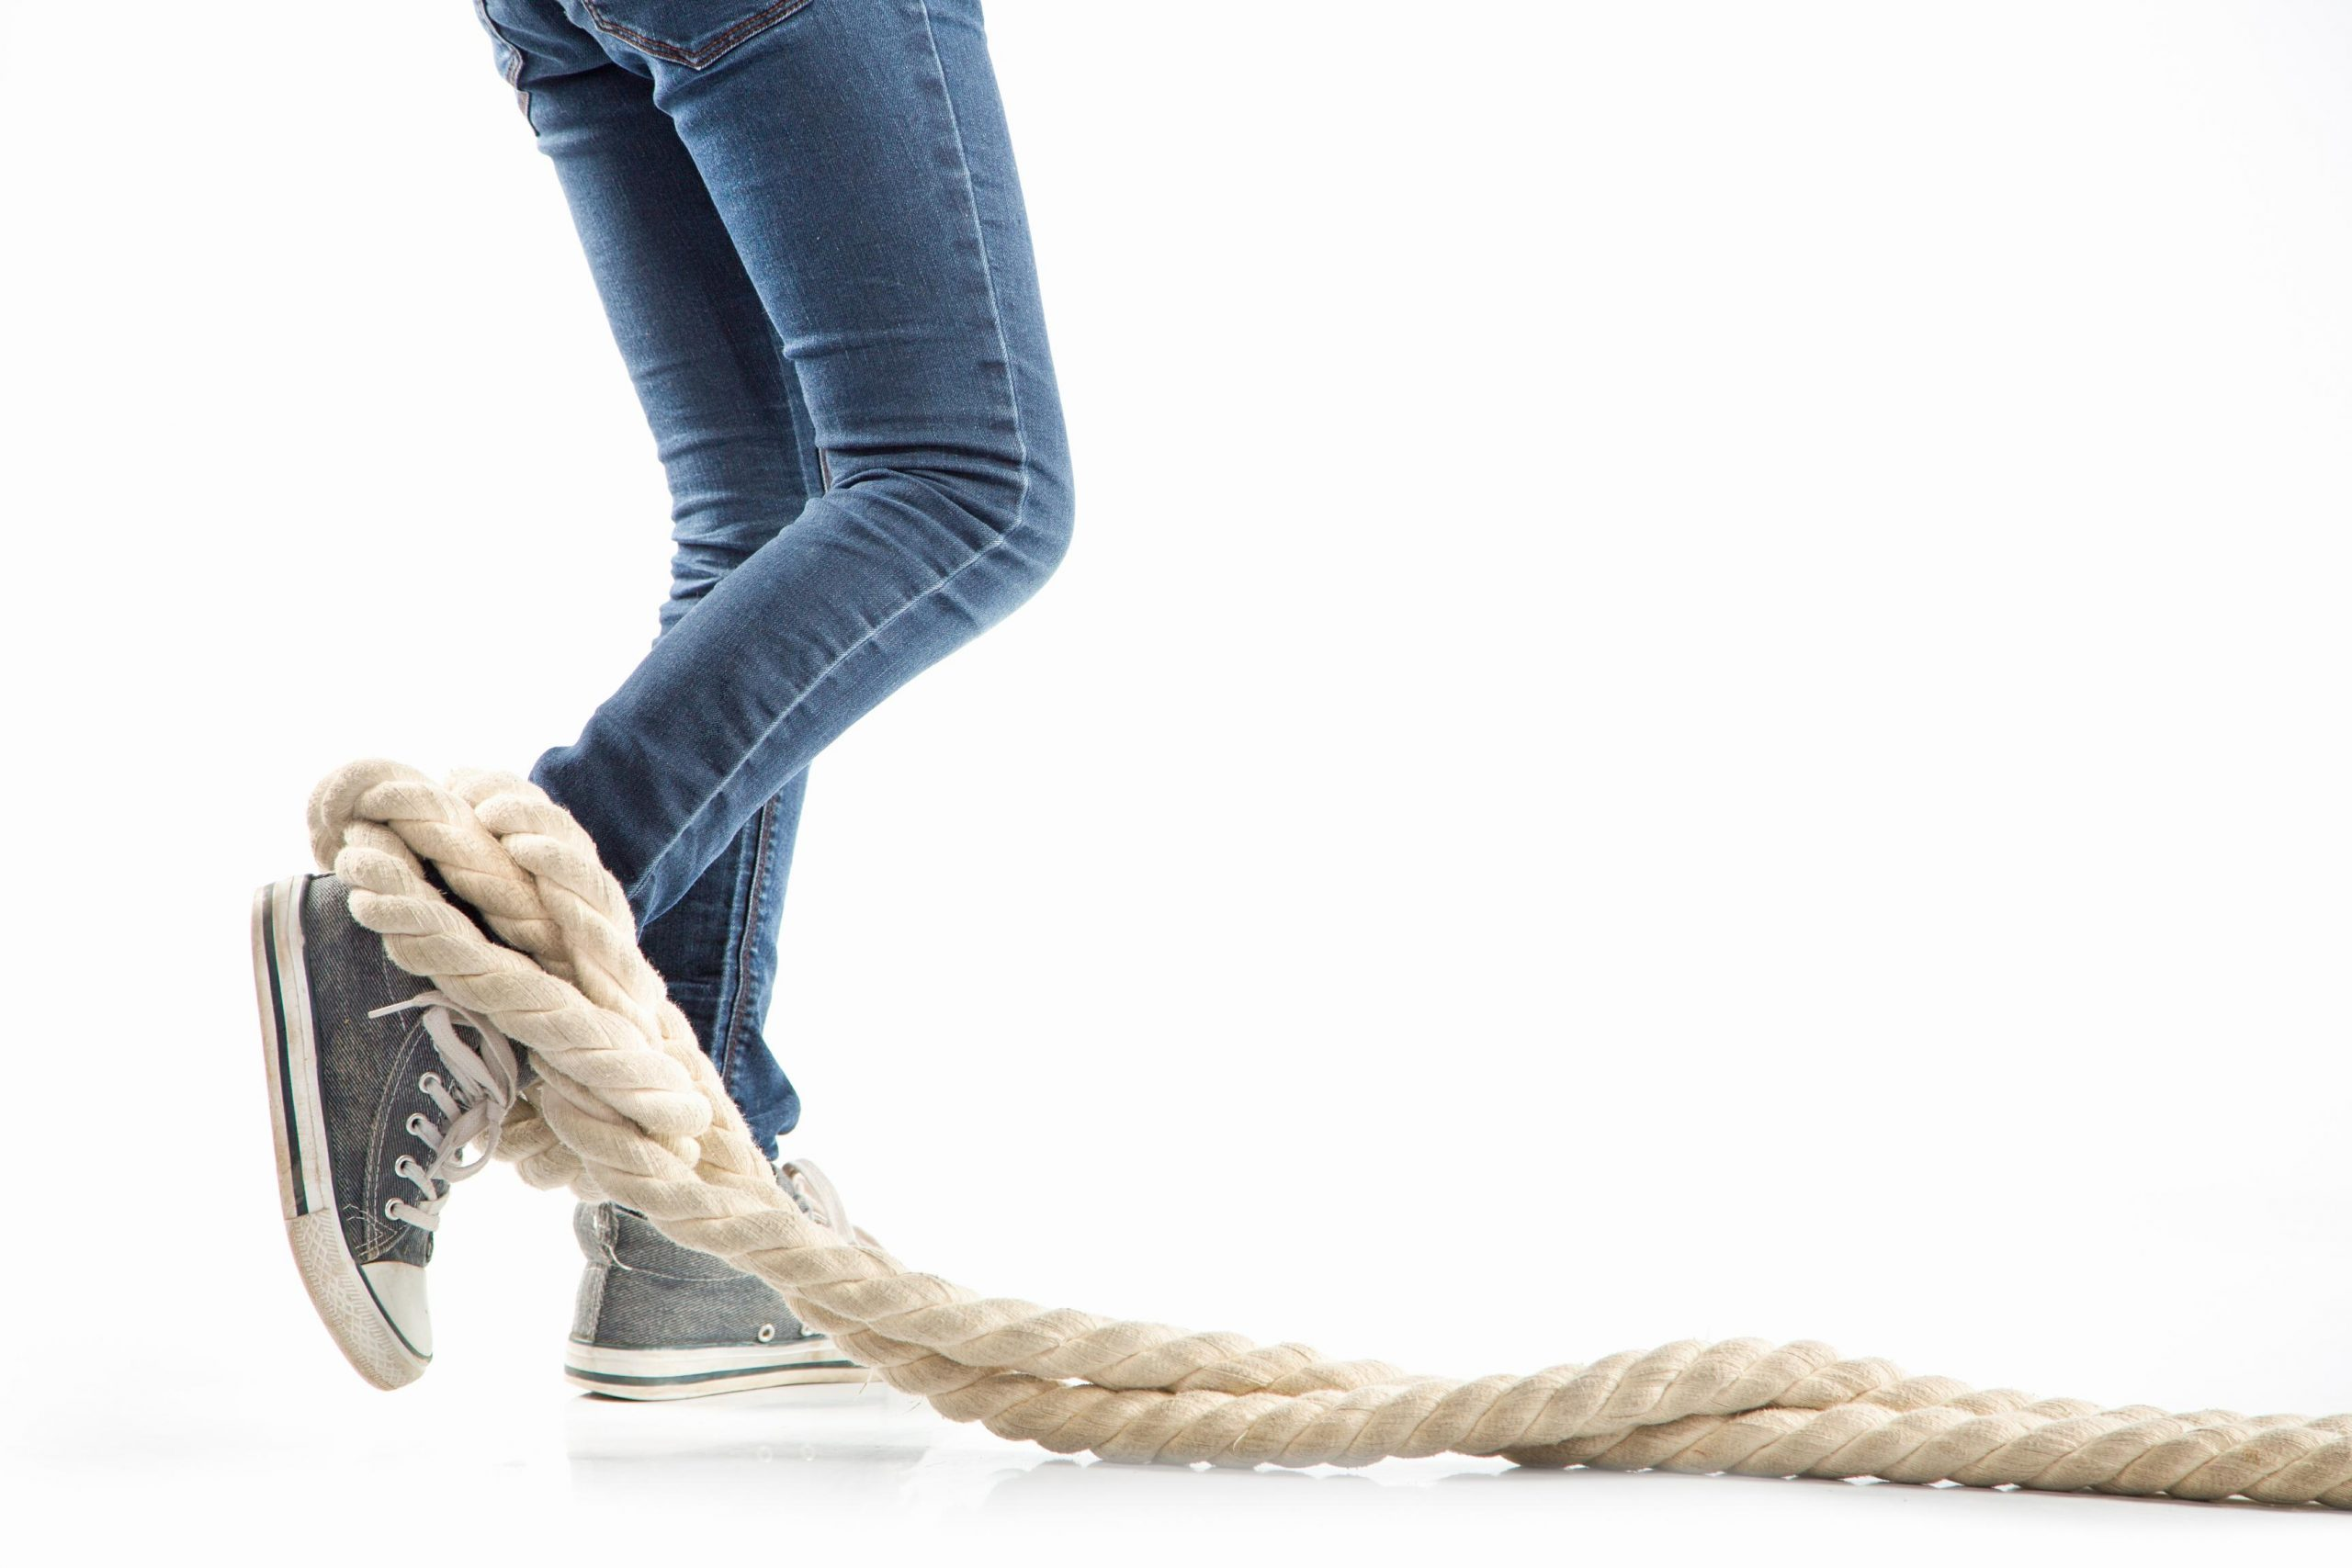 Choosing Freedom By Cutting The Rope